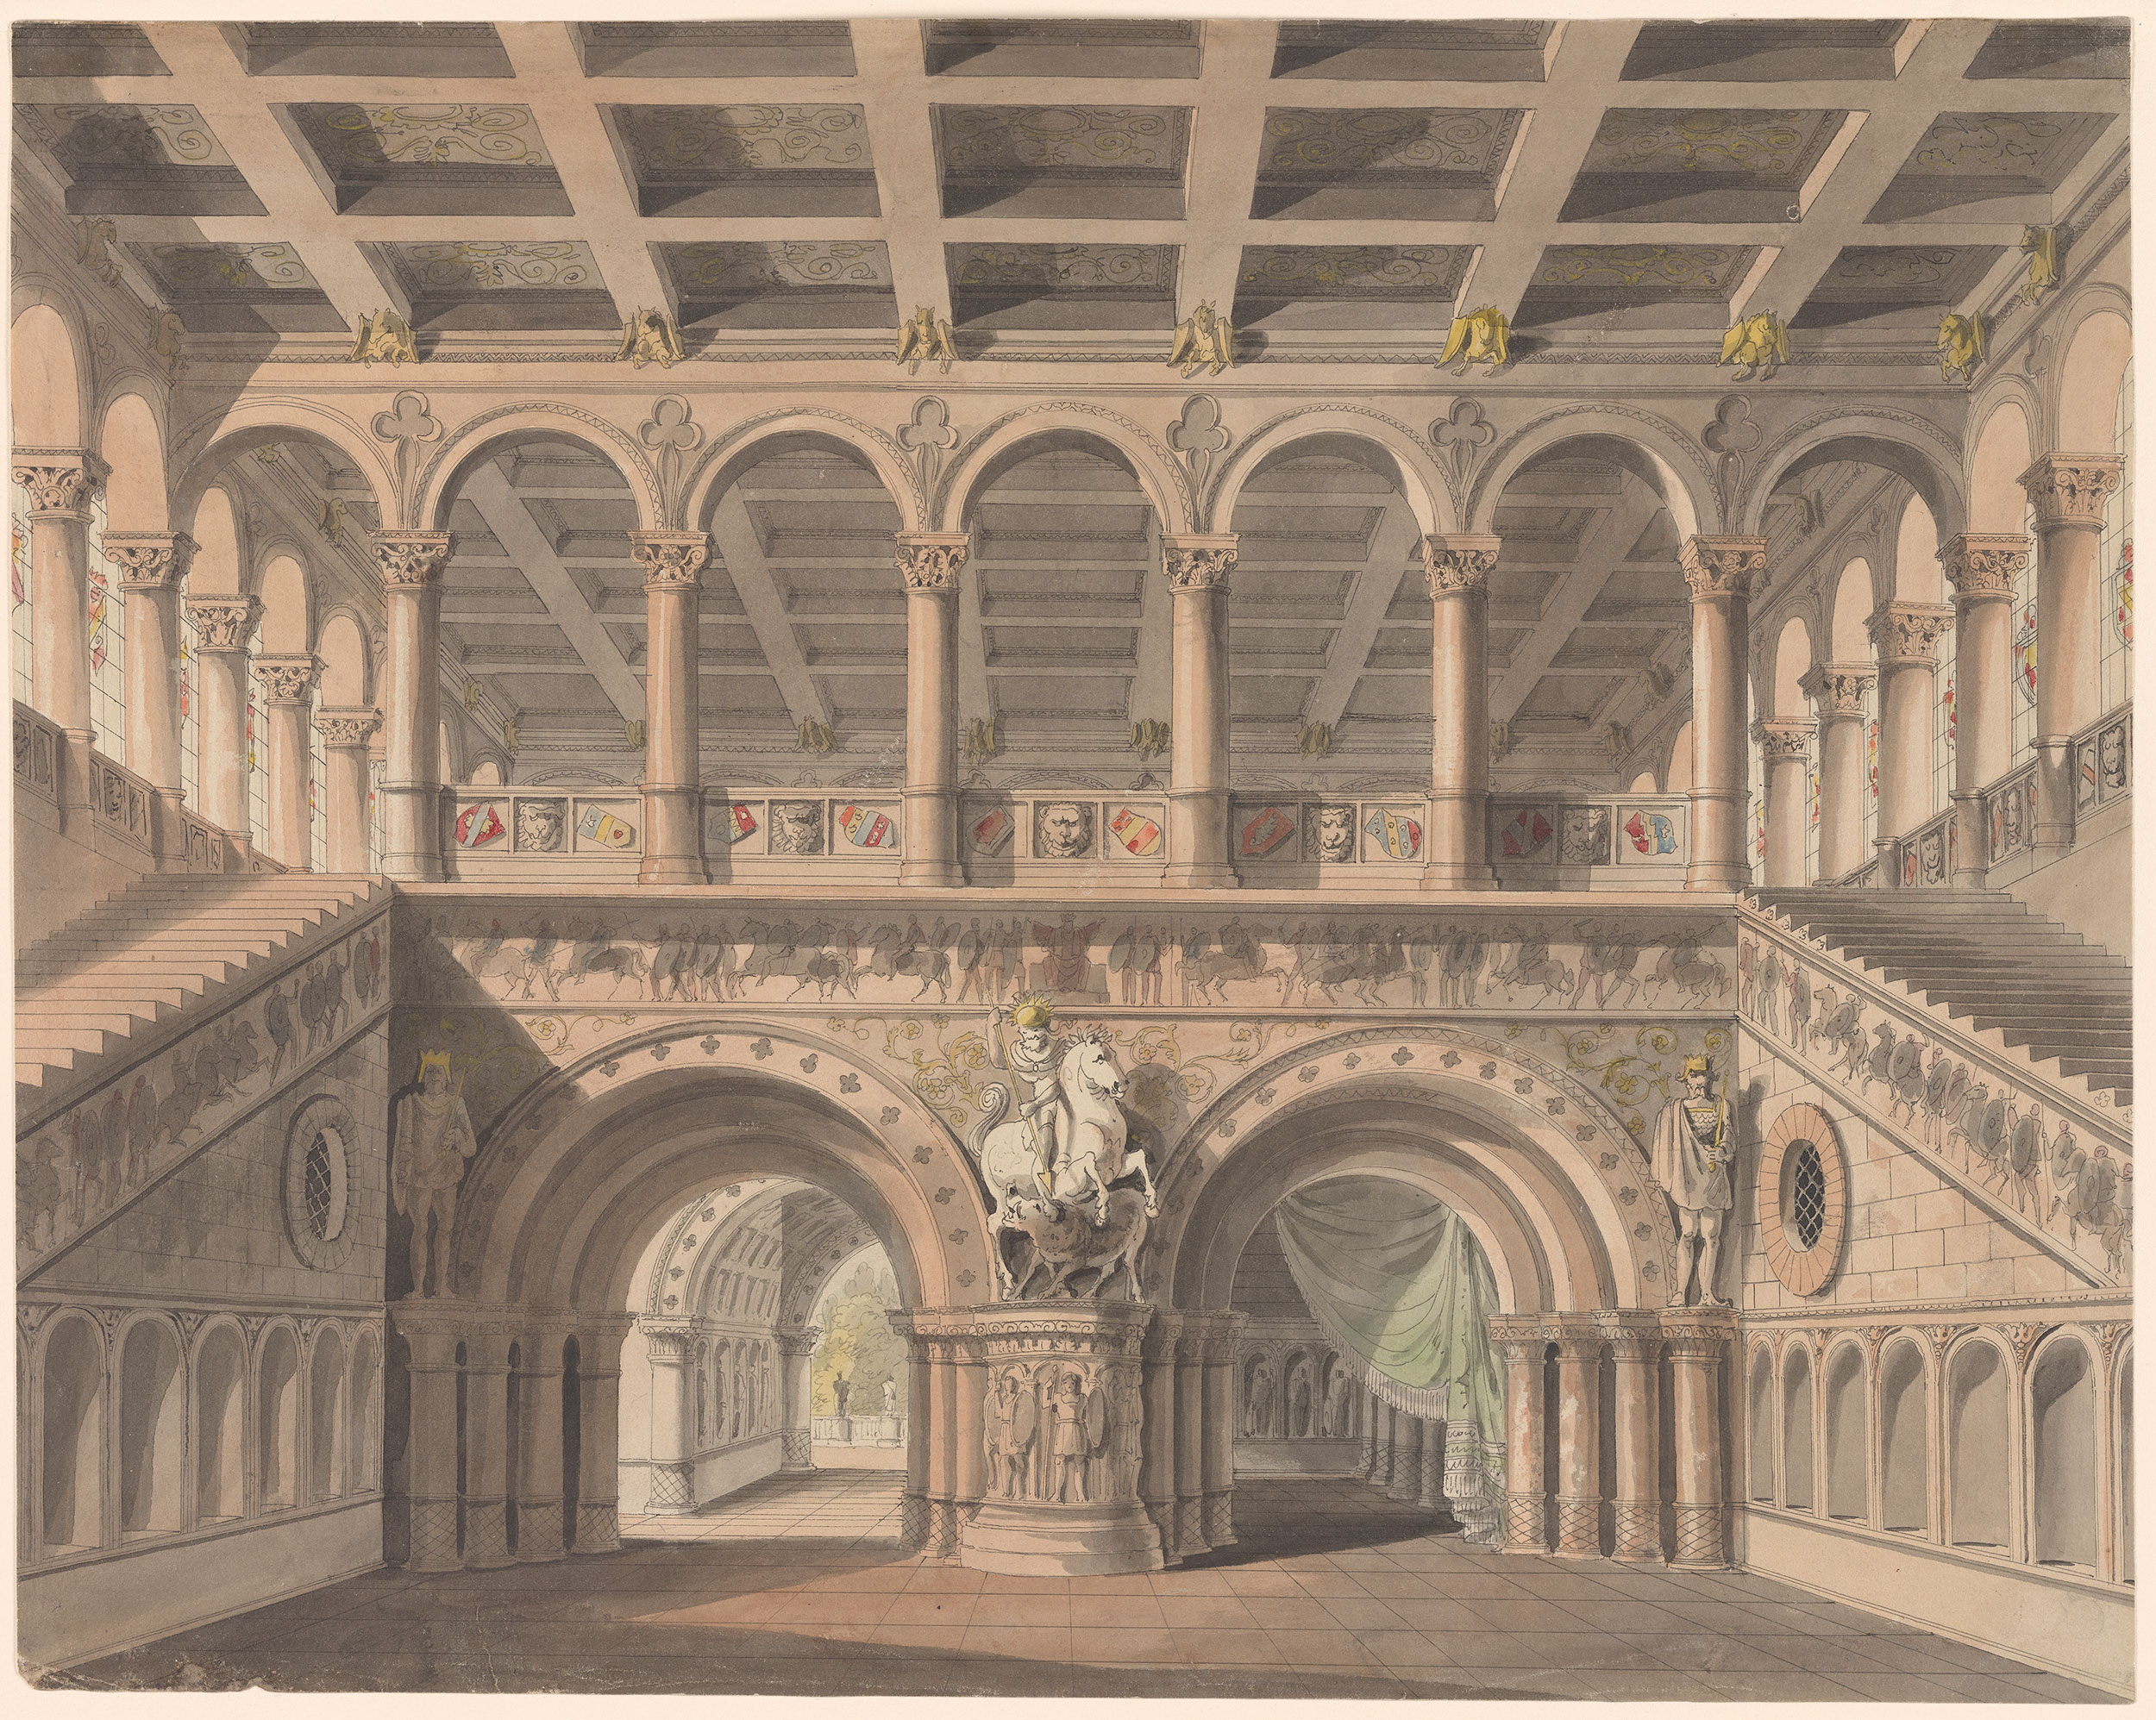 Karl Friedrich Schinkel  Stairhall from King Yngord Act I  Drawings Online  The Morgan